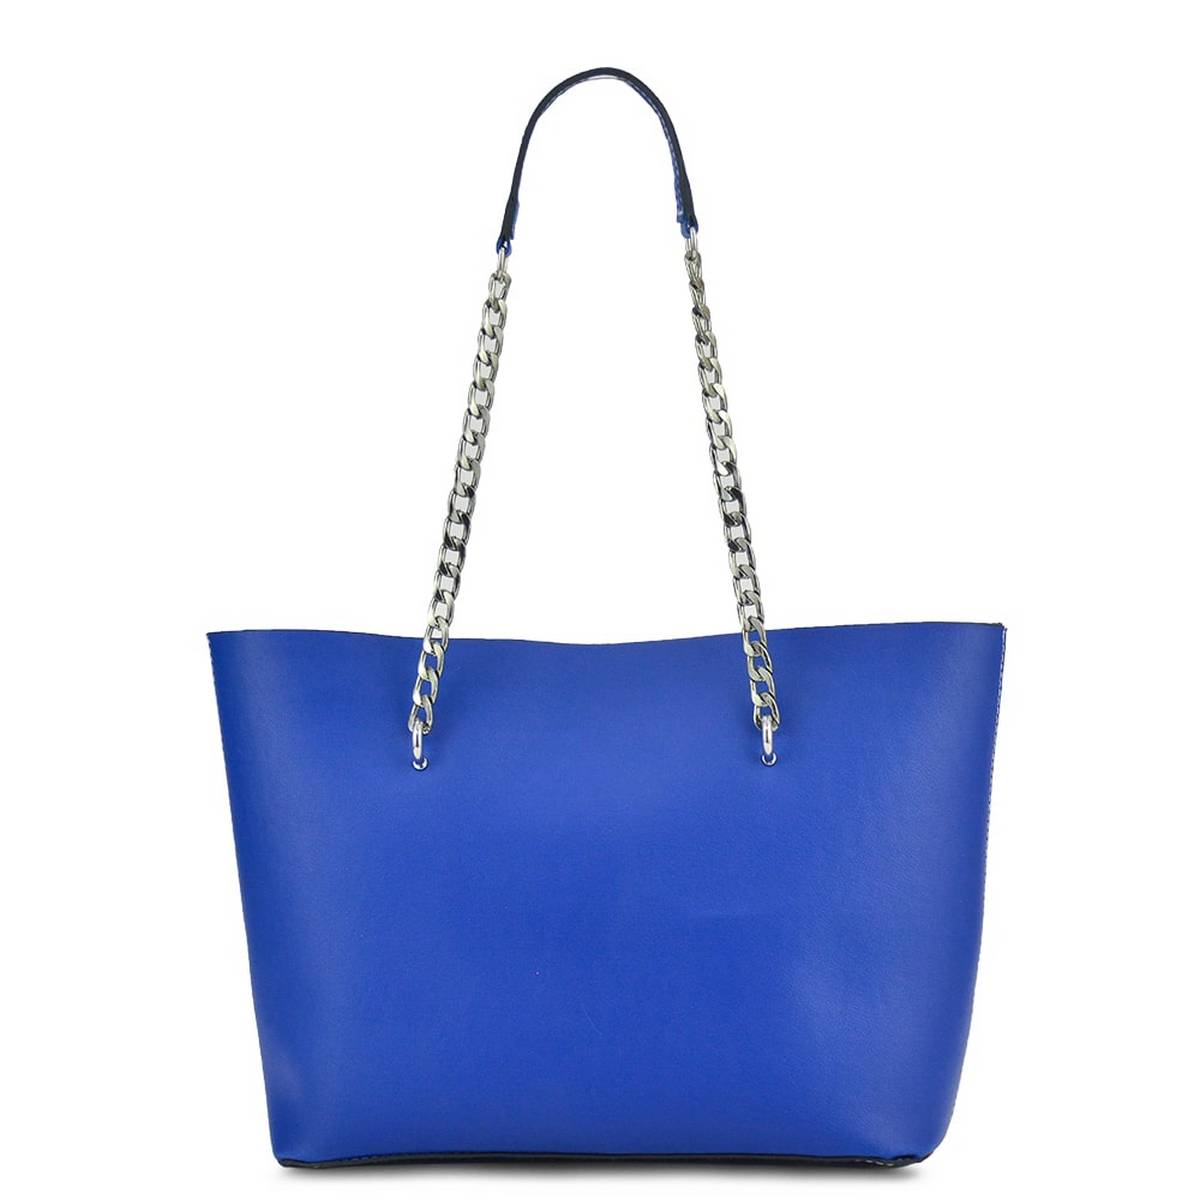 Astore Blue Verona Grey Metal Shoulder Fix Chain with Double Compartments Inside Multi Pockets and Mid Large Zip Pockets Vegan Leather Tote Bag Shoulder Bag Hand Bag